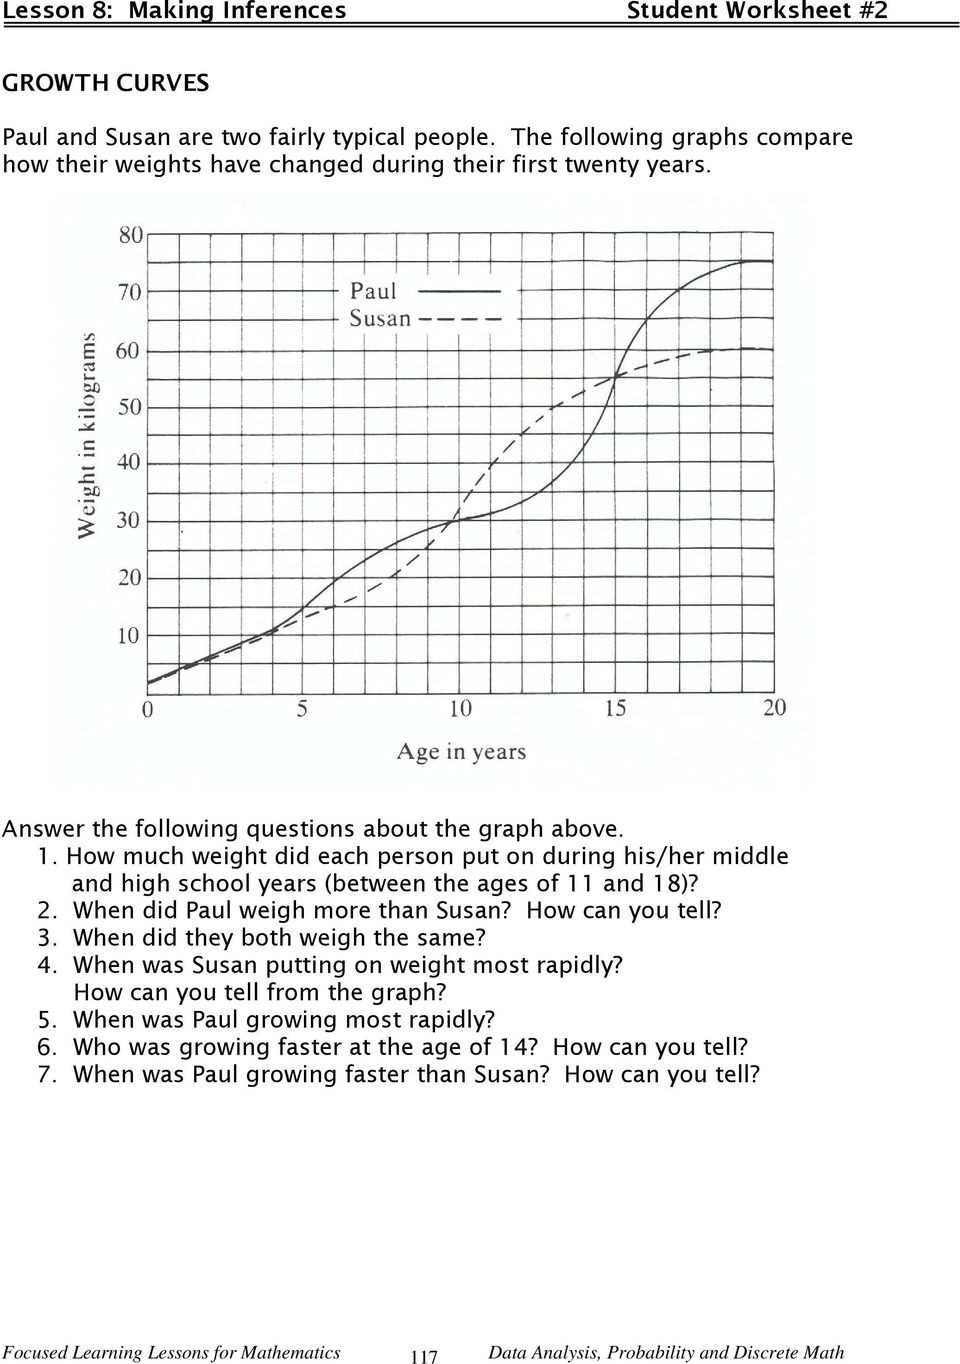 Graphing Linear Equations Worksheet Pdf Lesson Making Inferences Pdf Free From Graphs Worksheets